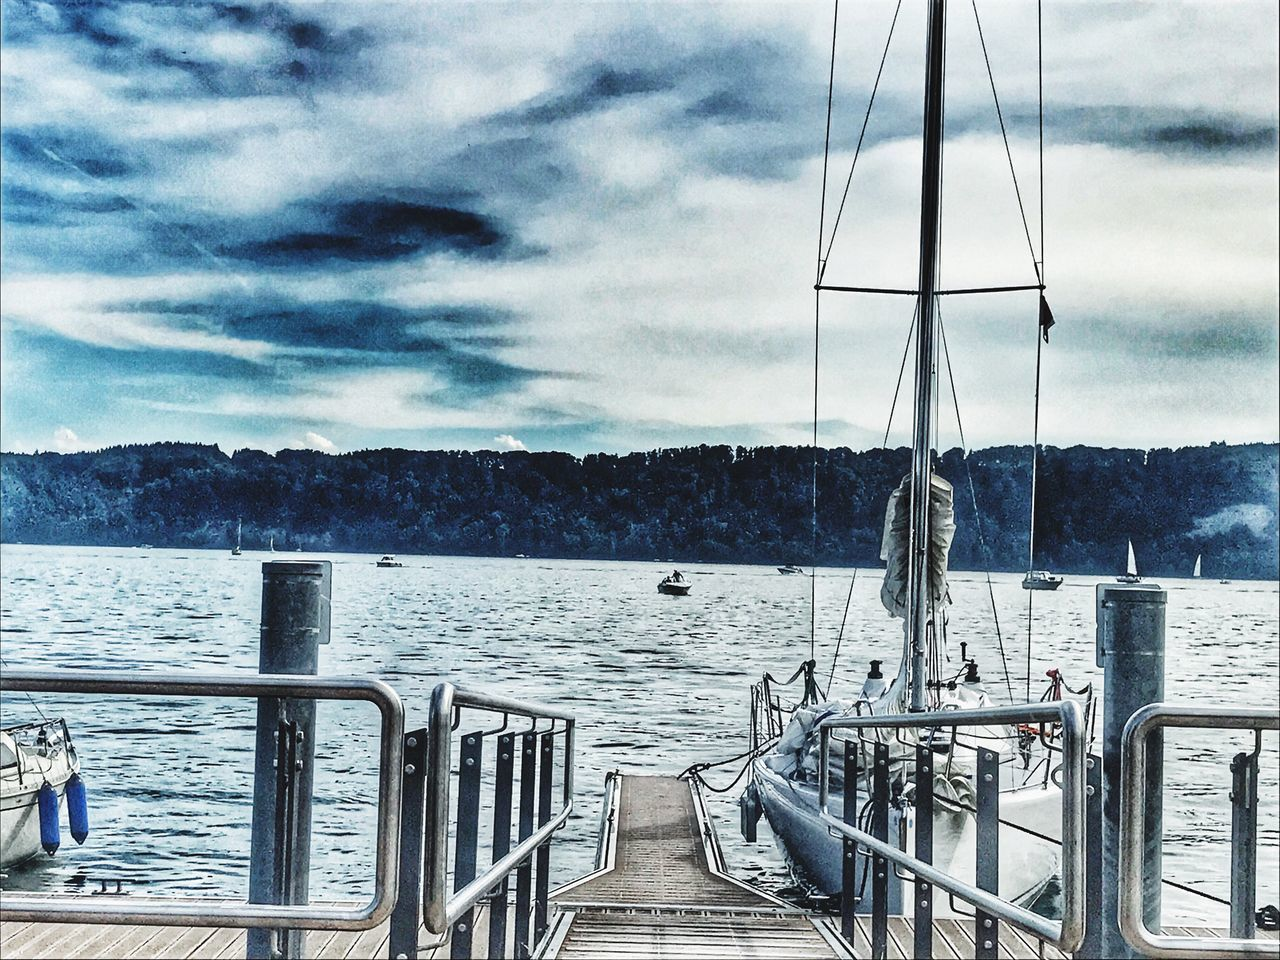 water, sky, railing, nautical vessel, sea, cloud - sky, no people, nature, transportation, mode of transport, day, outdoors, built structure, sailing, scenics, beauty in nature, architecture, scenery, boat deck